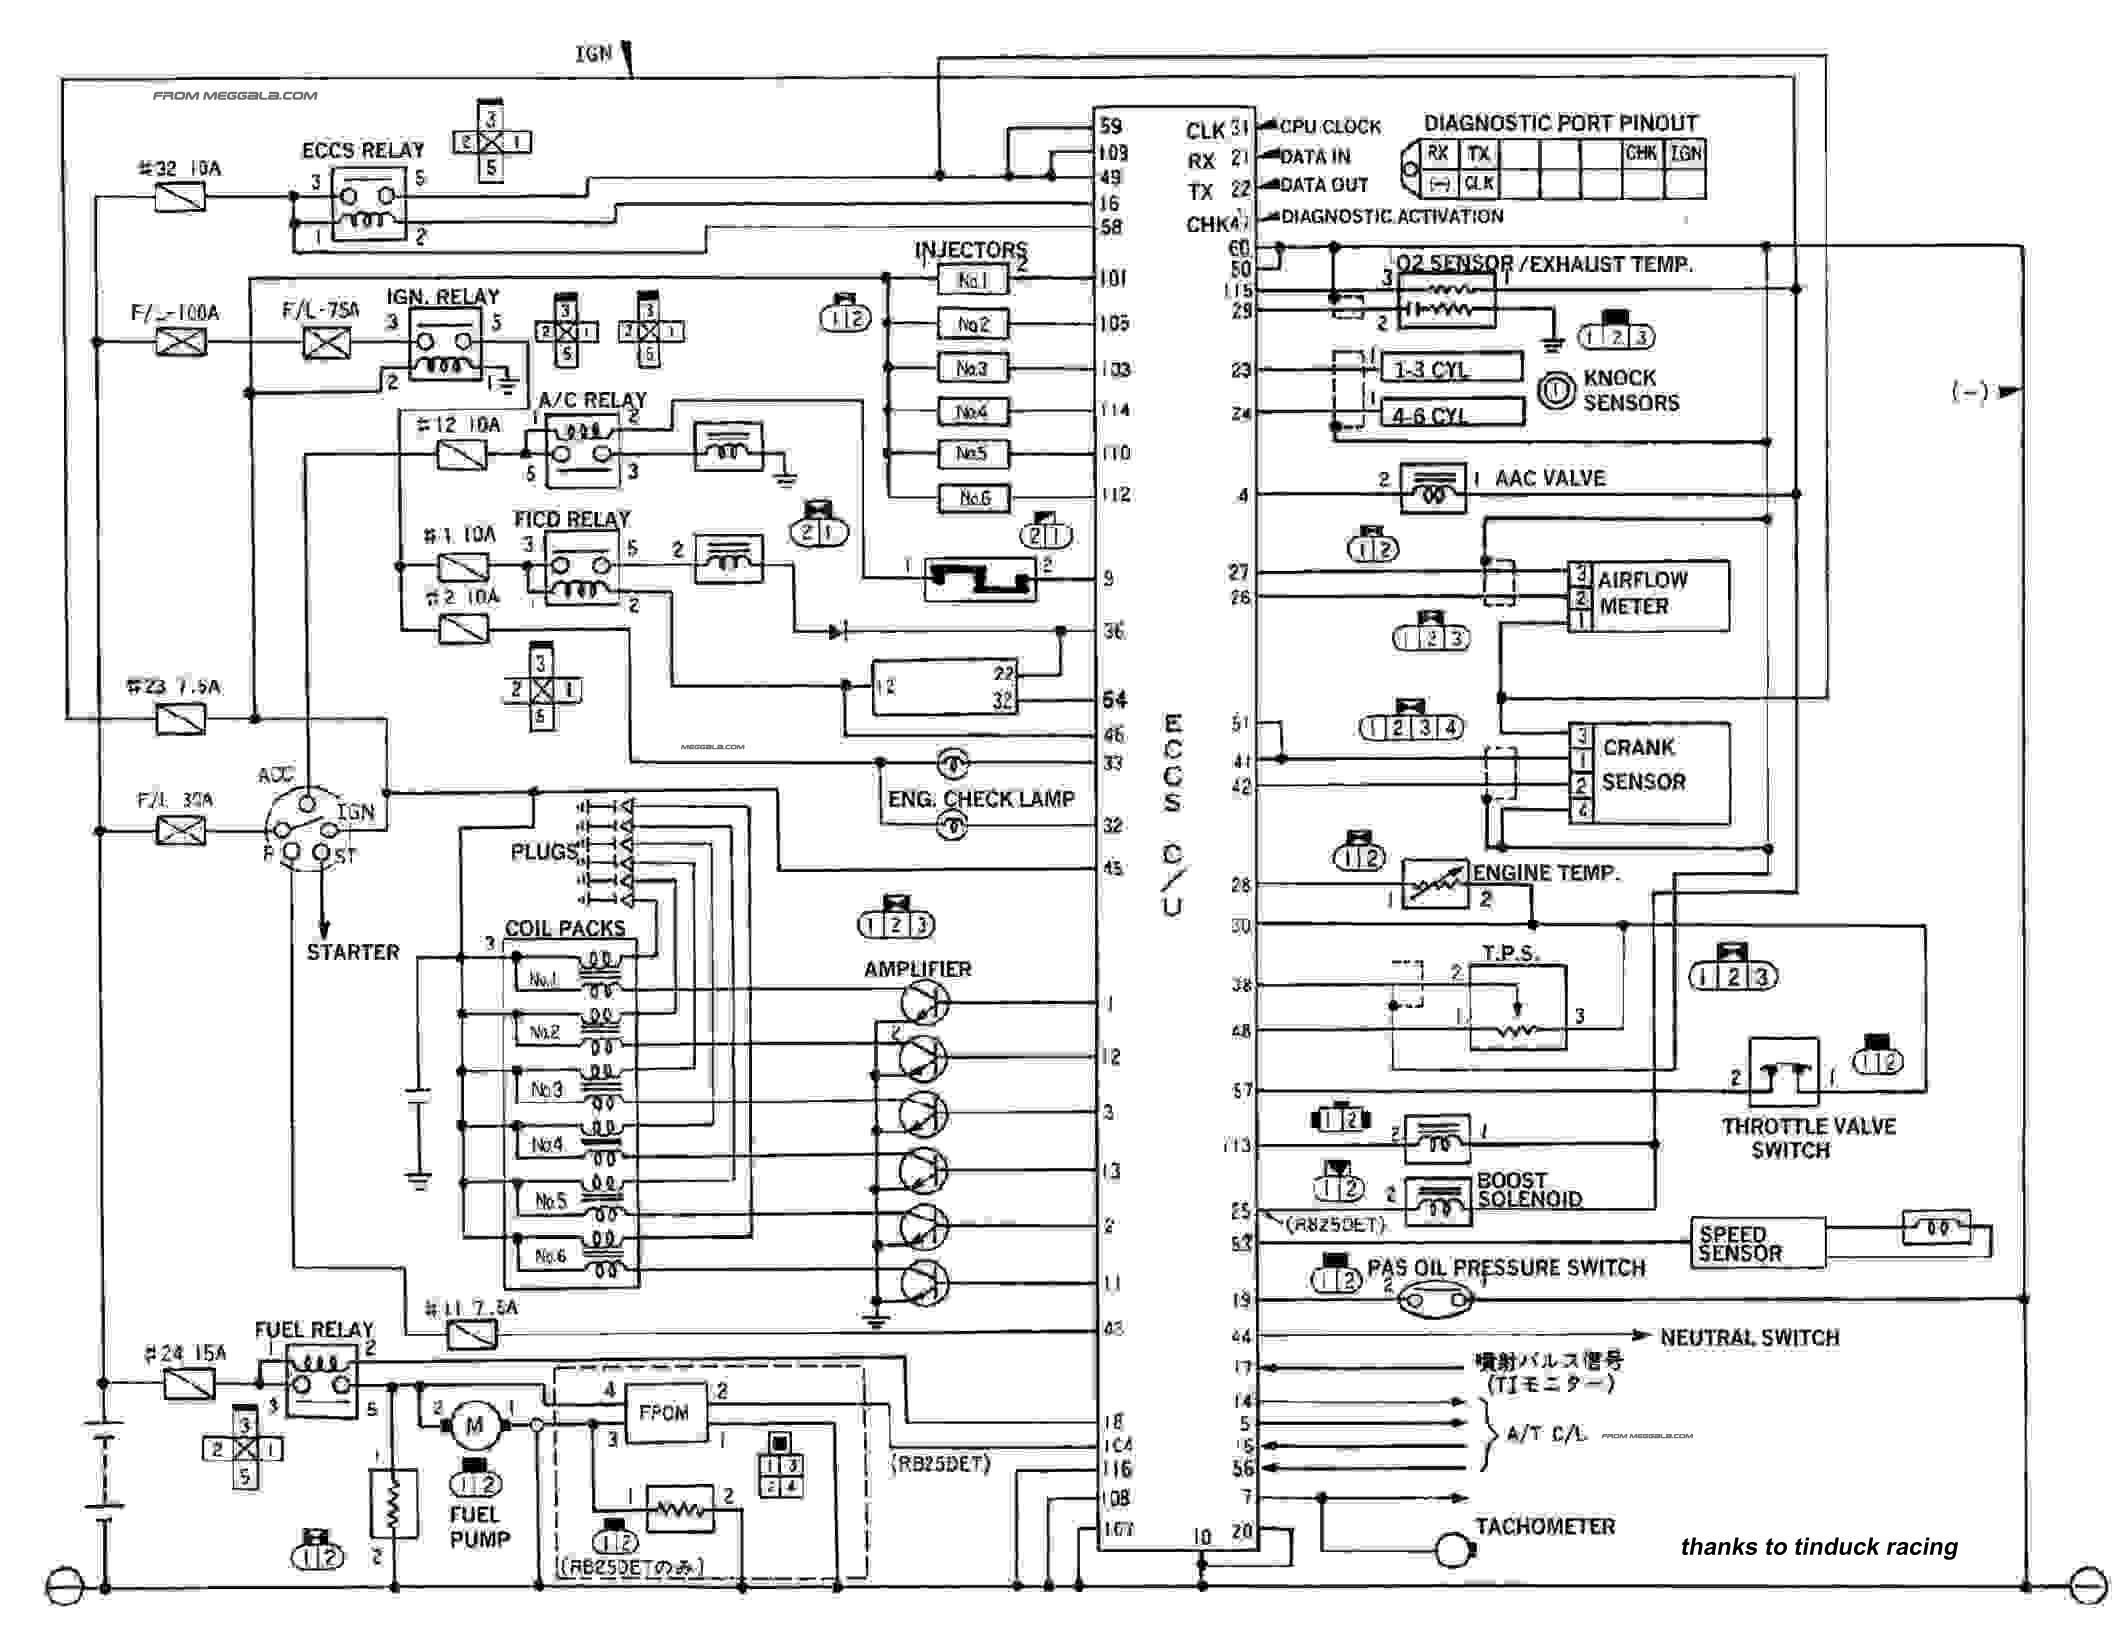 Infiniti Q45 Engine Diagram Best Q45 Alternator Wiring Diagram – Ipphil Of Infiniti Q45 Engine Diagram